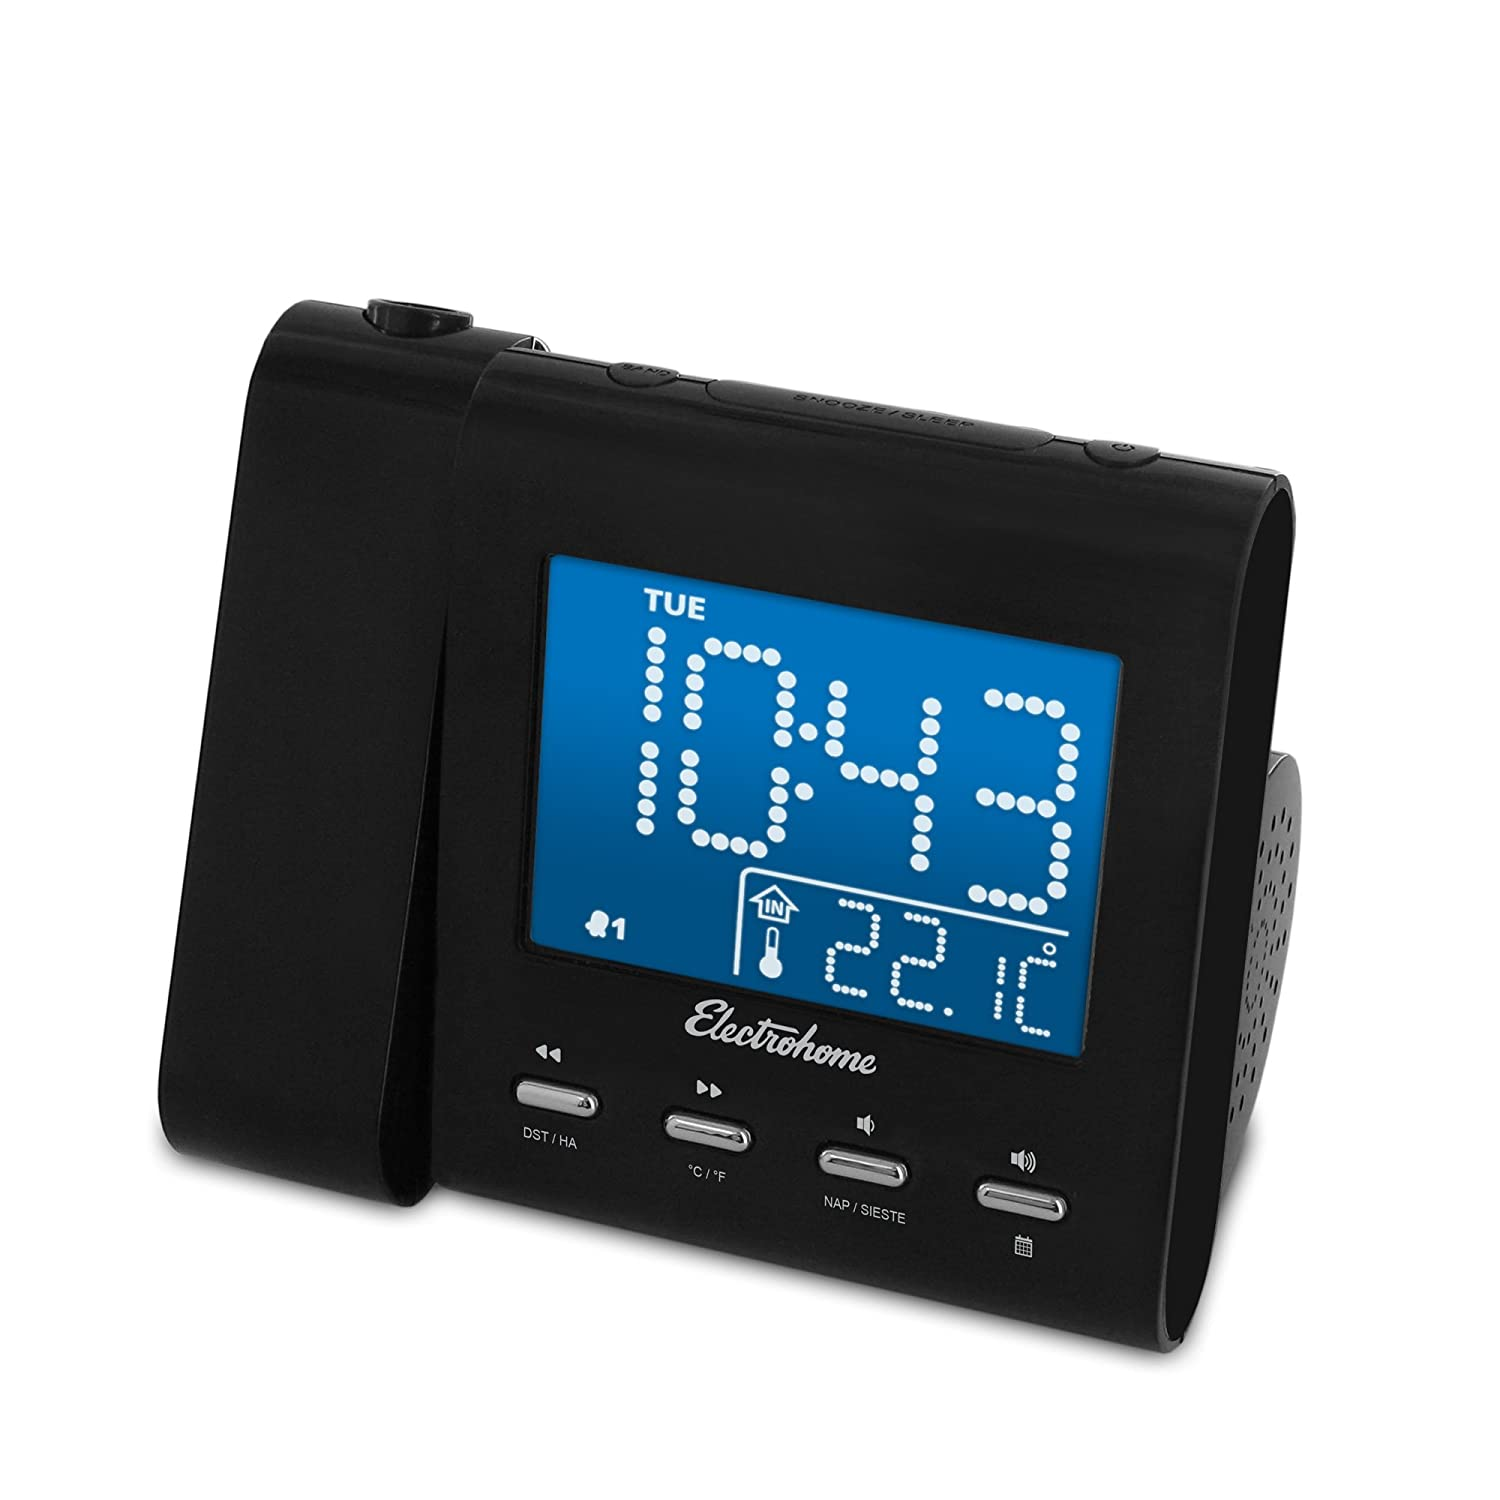 Electrohome Projection Alarm Clock Review